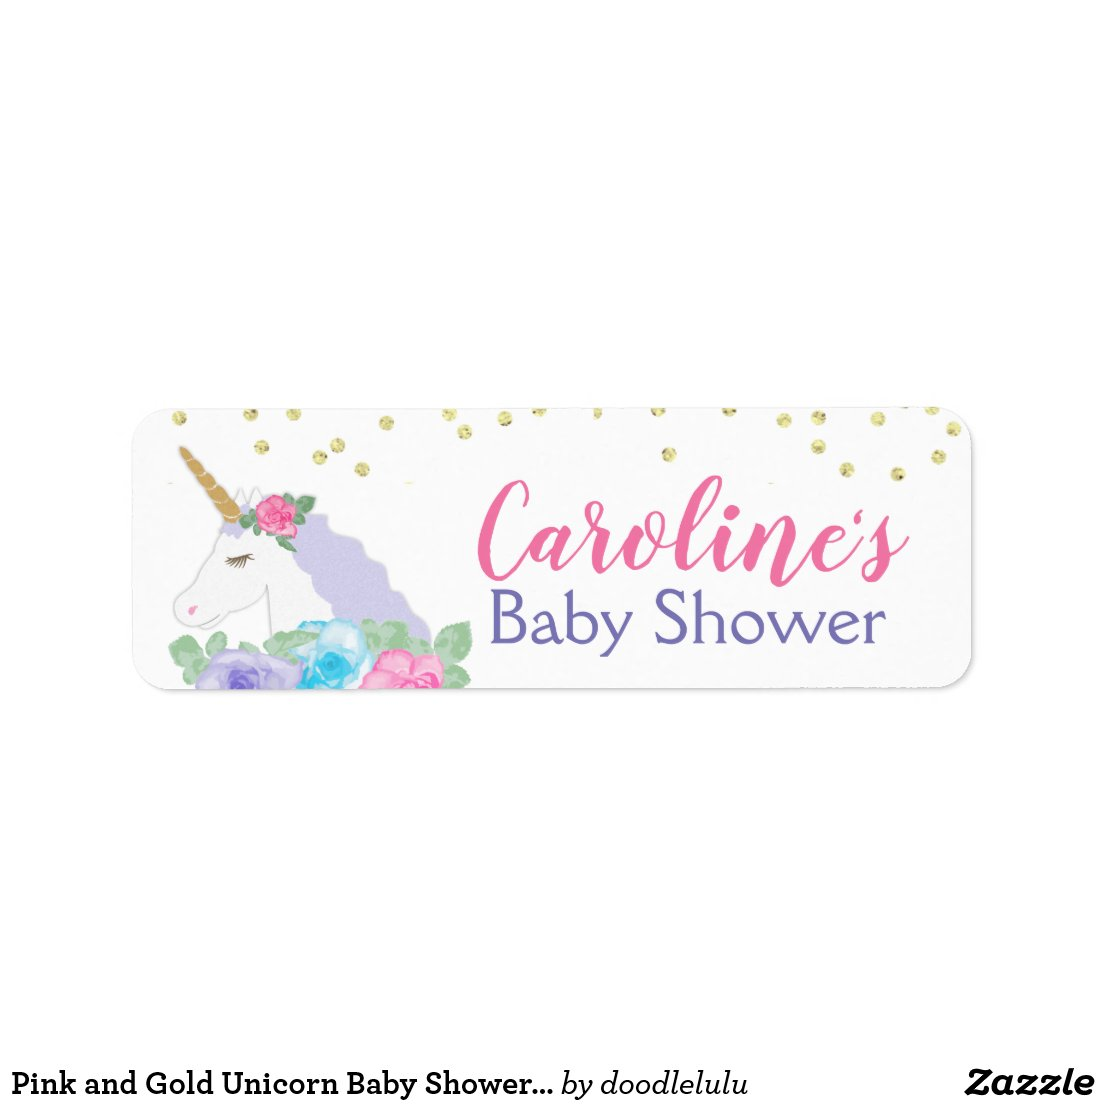 Pink and Gold Unicorn Baby Shower Favor Label